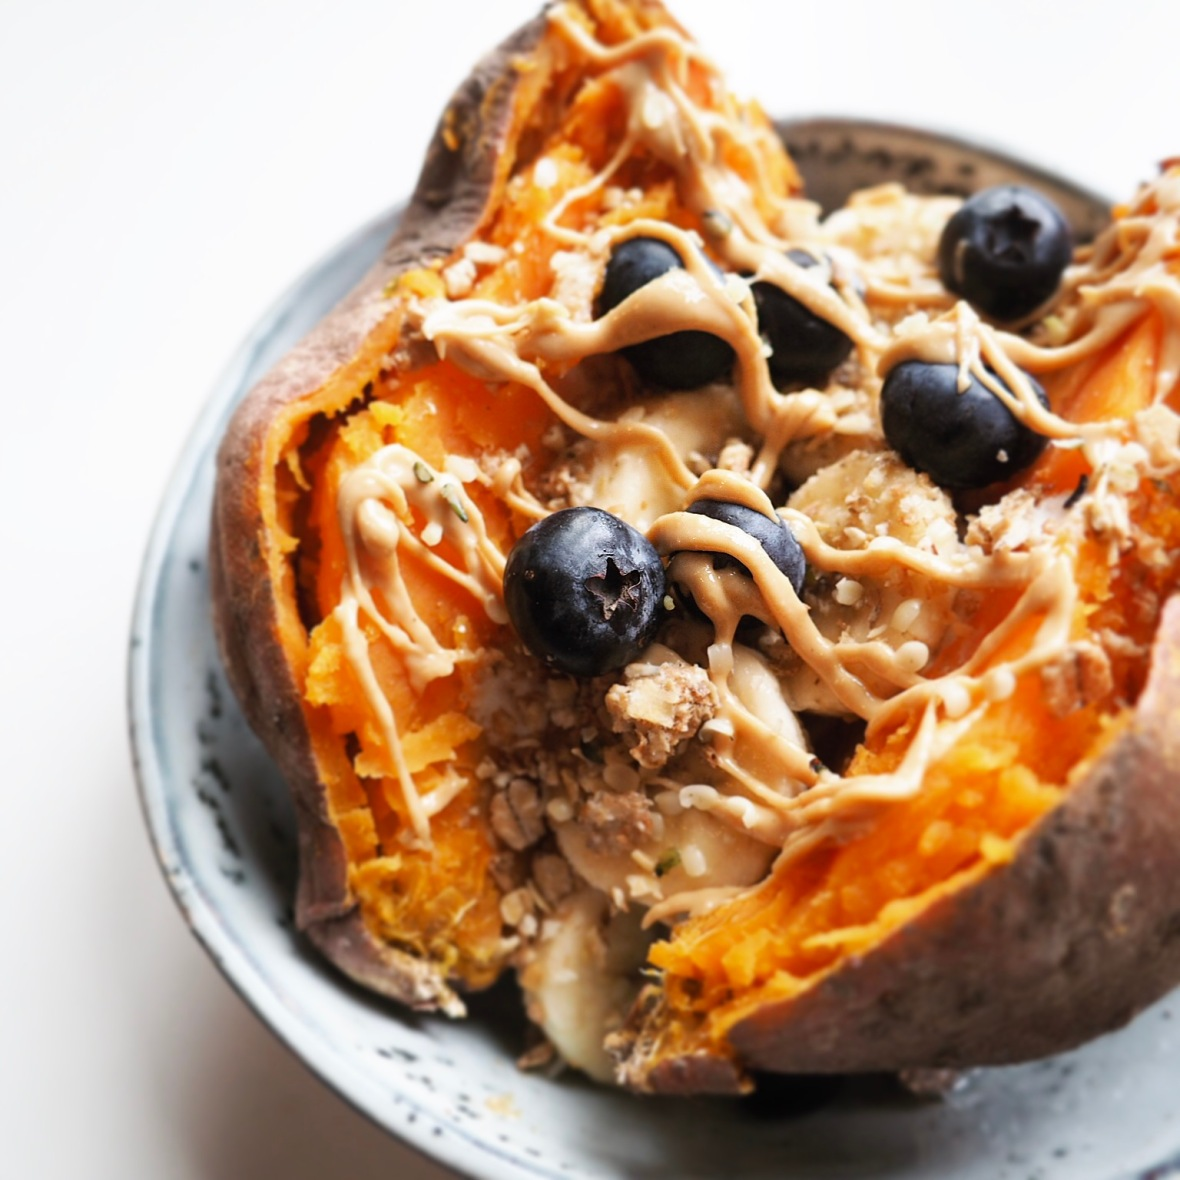 Sweet sweet potato dish banana blueberries